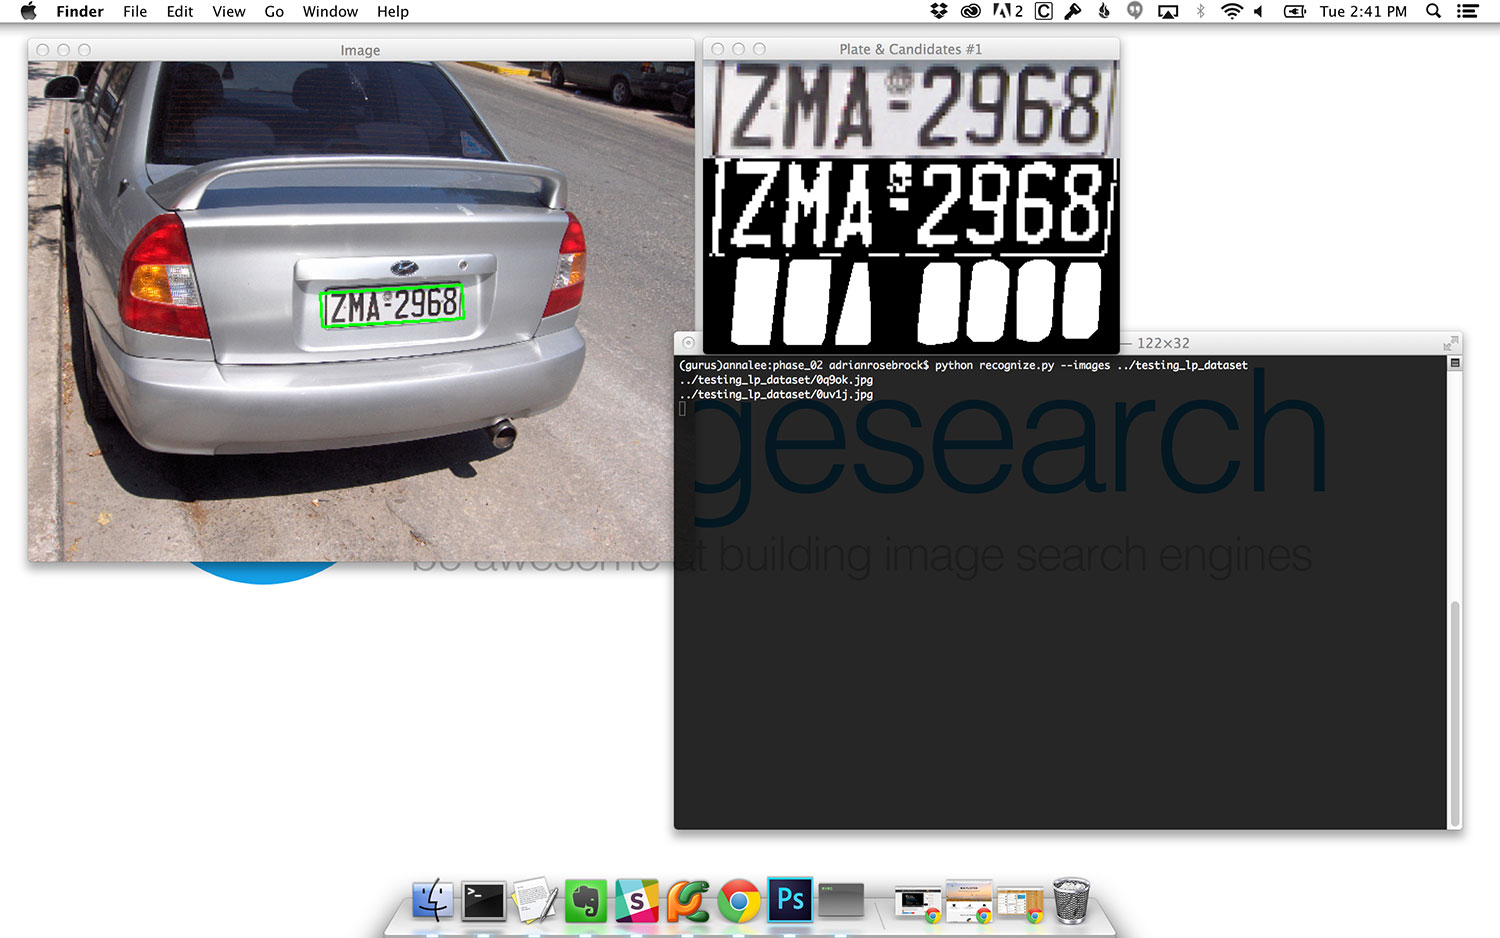 Figure 10: Detecting the license plate in the image, followed by extracting character regions from the license plate.